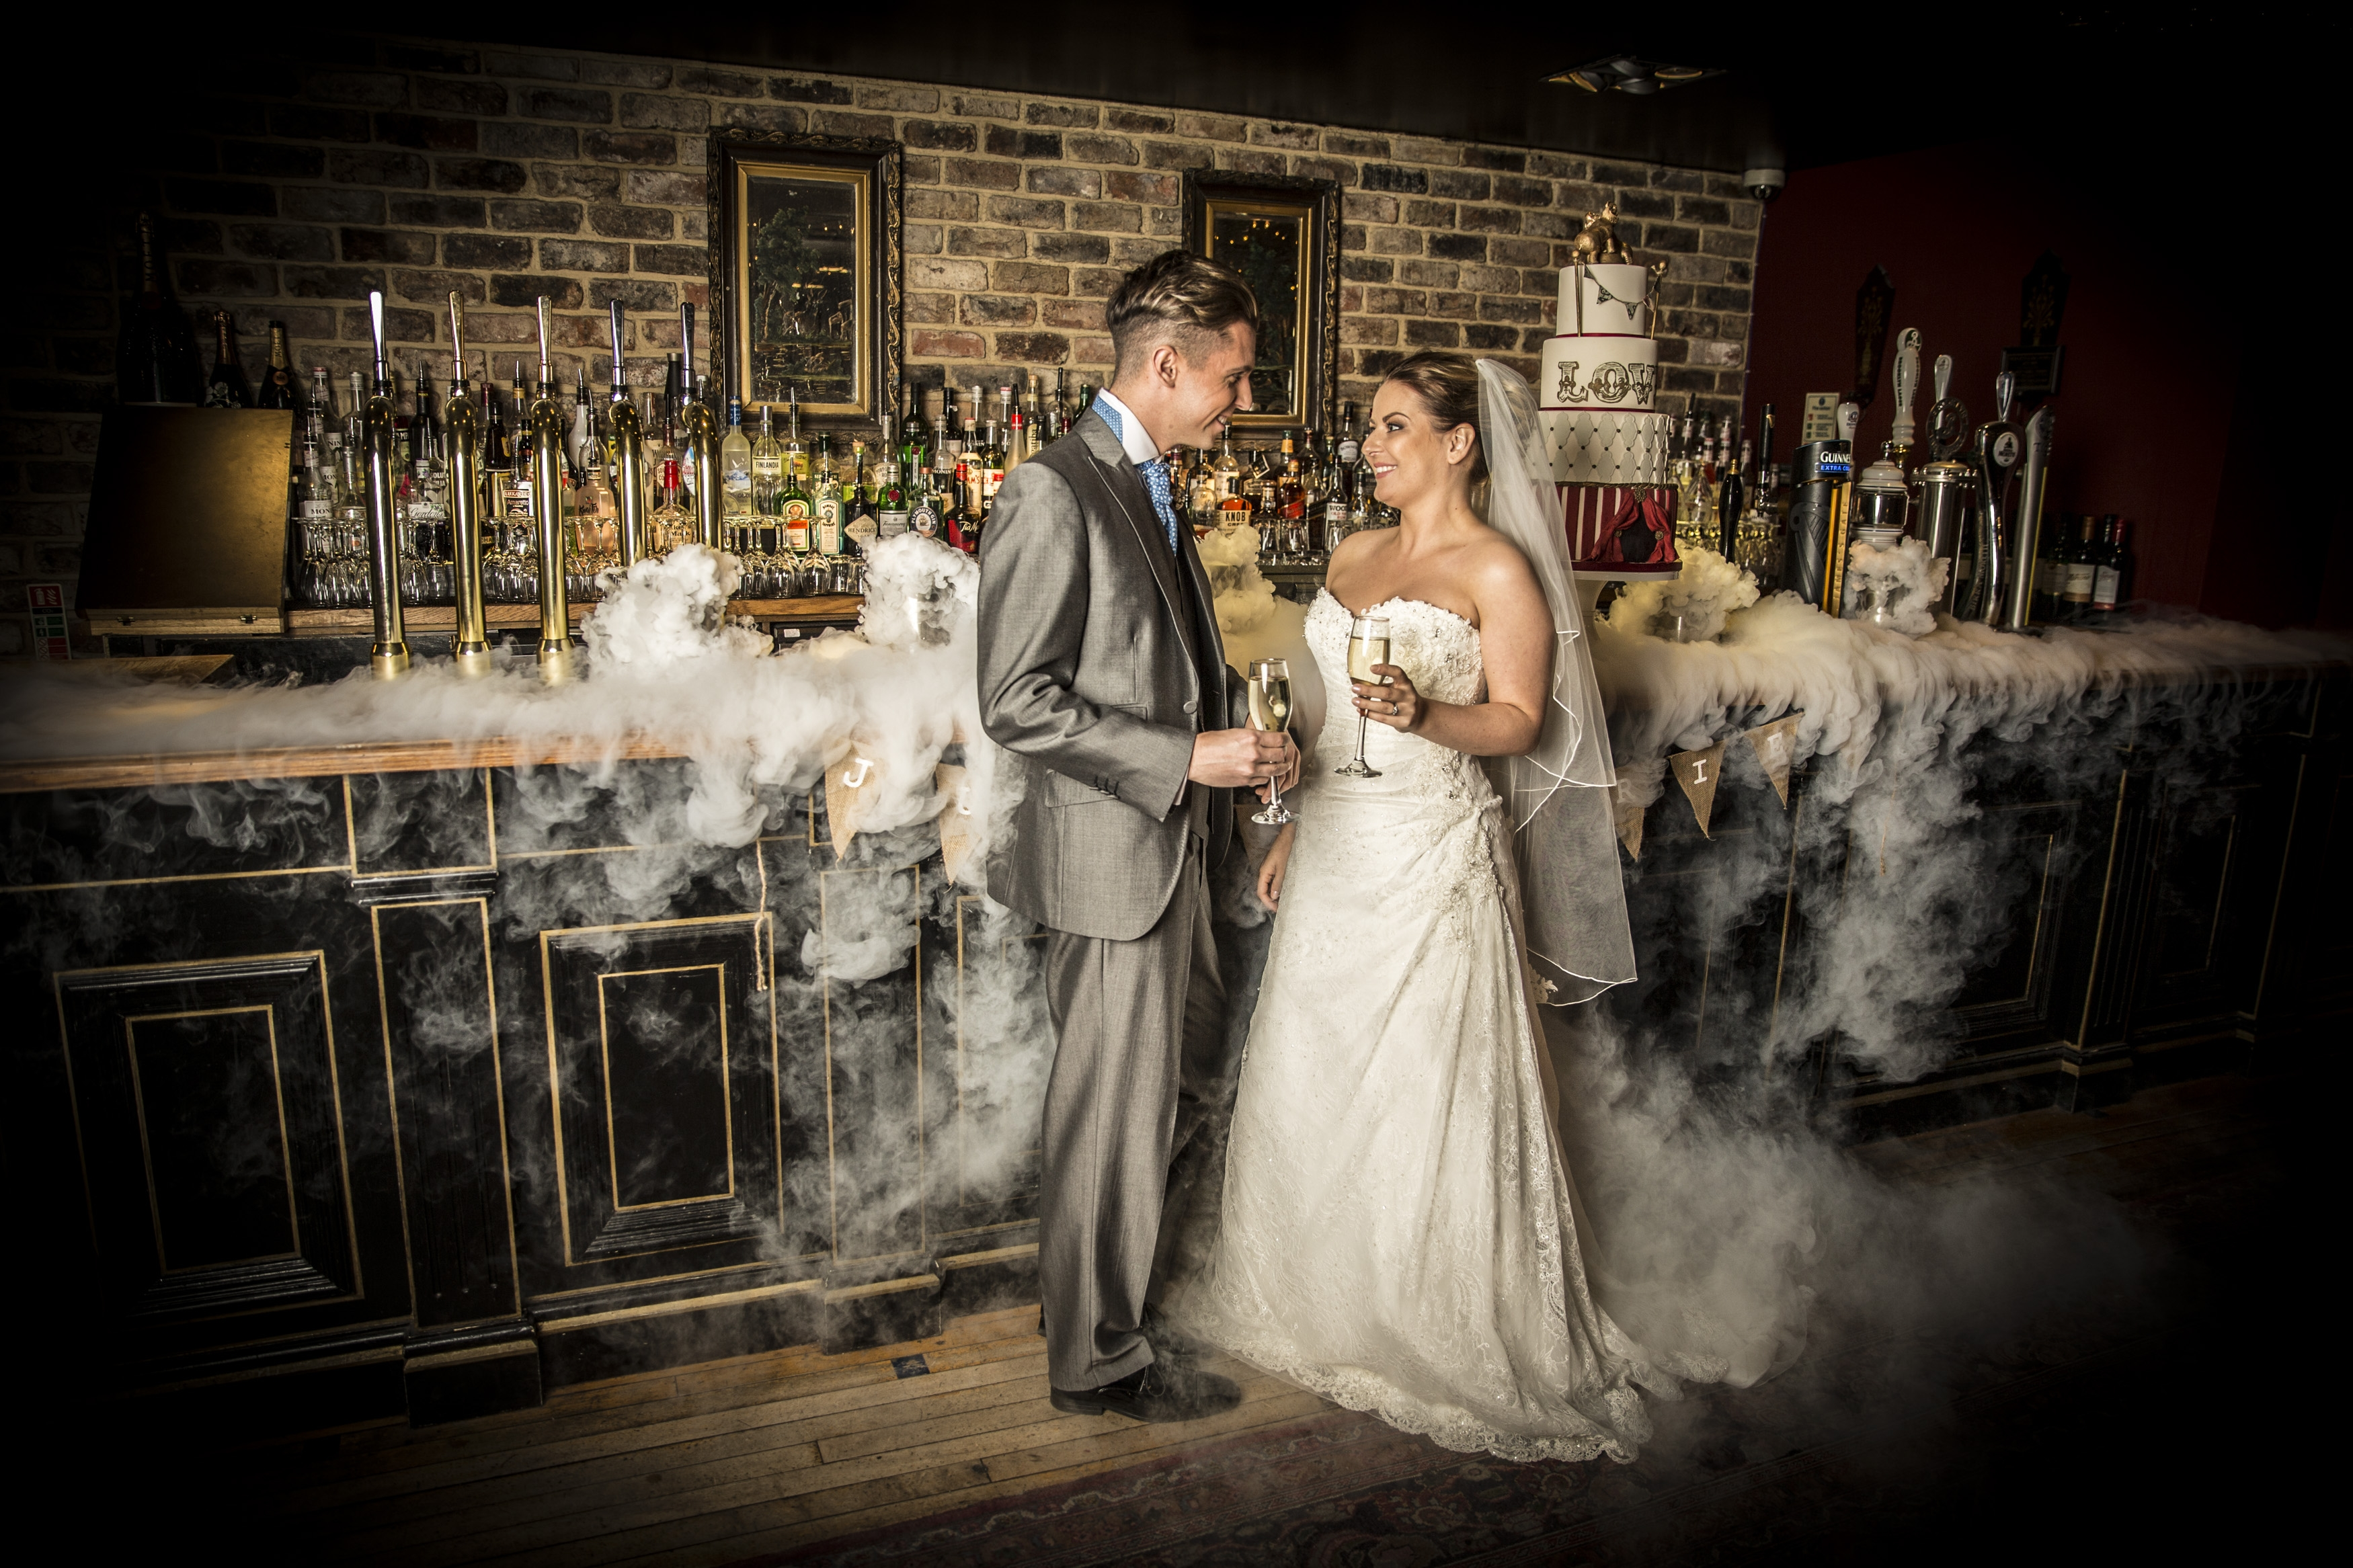 Wedding Reception Venues North East : Canny campers most popular wedding venues in the north